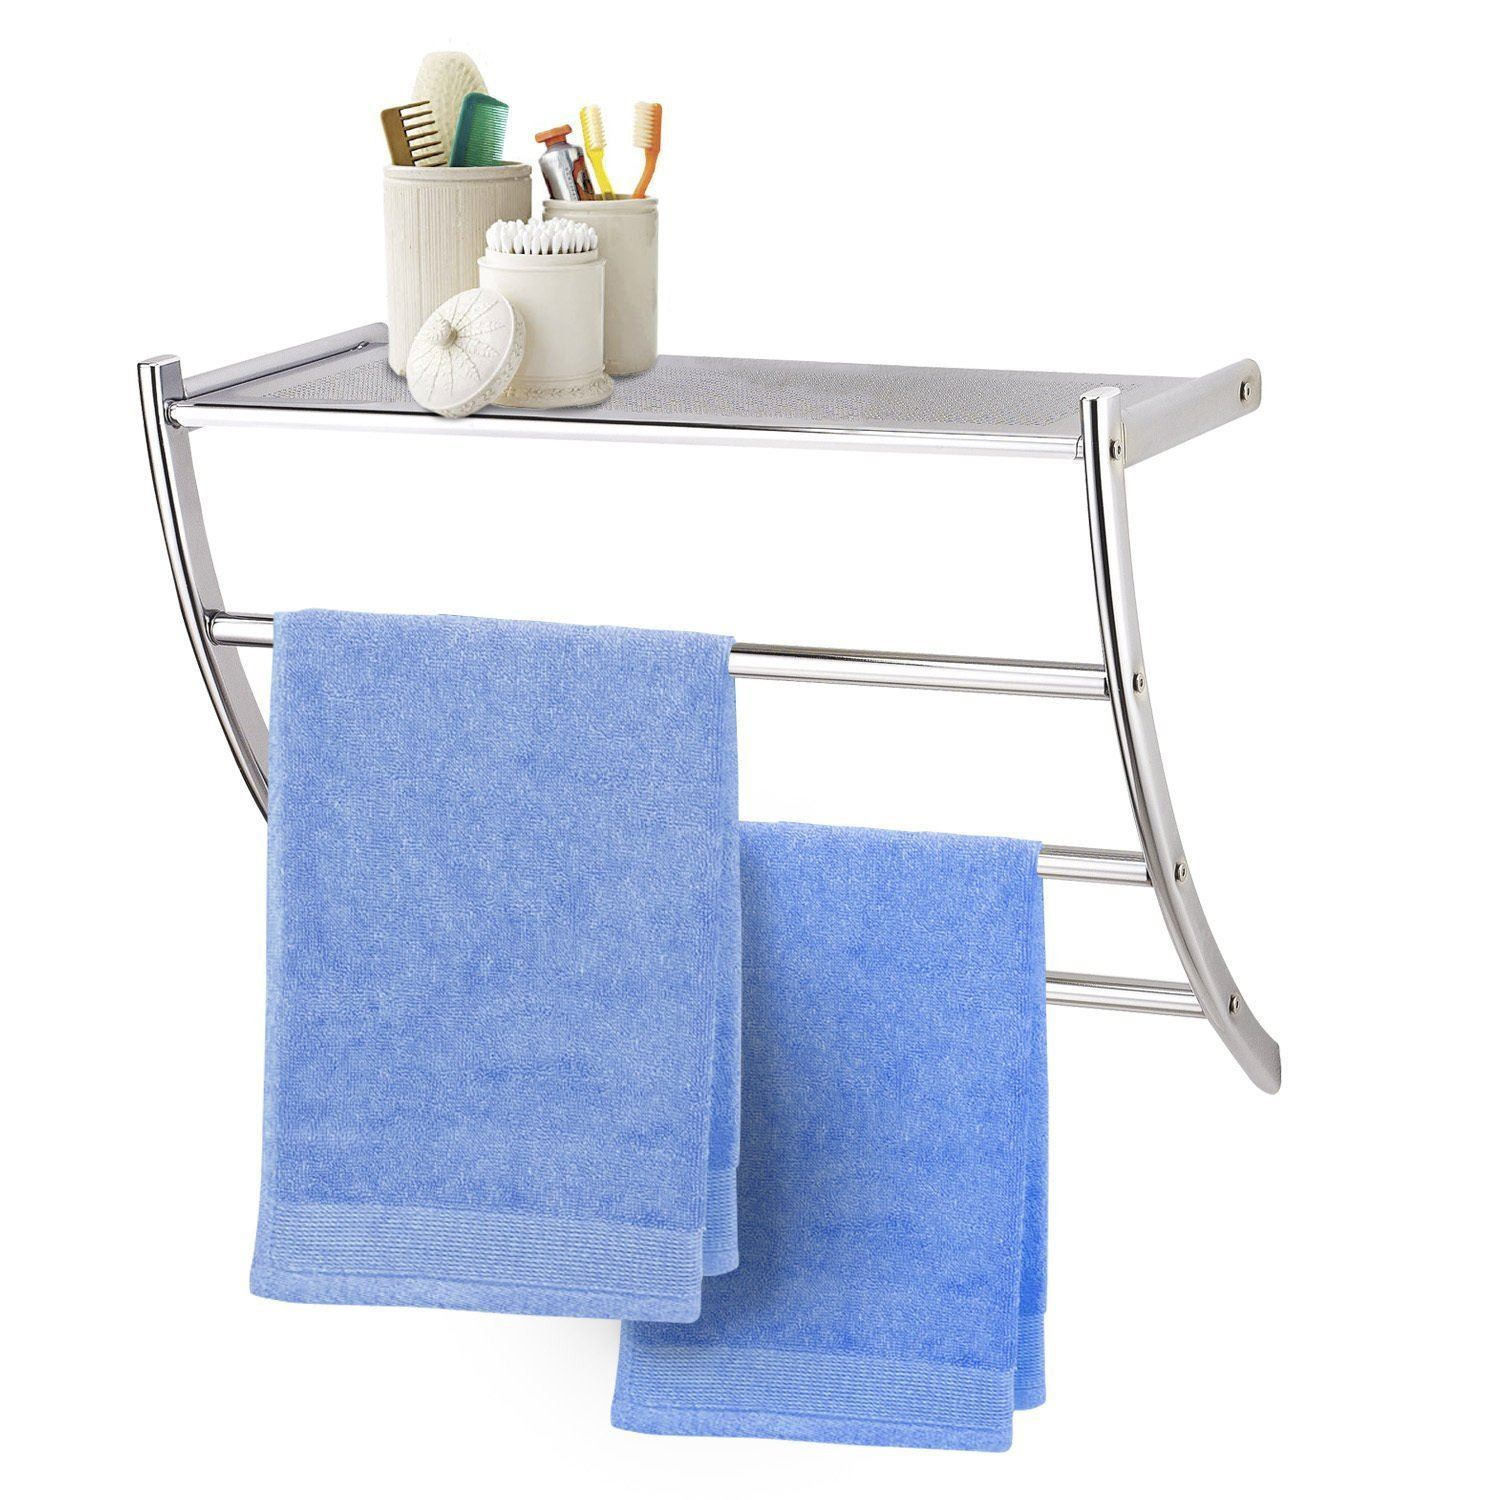 Metal Chrome Pleated Bathroom Wall Rack Shelf Storage Unit Towel Rail Ebay